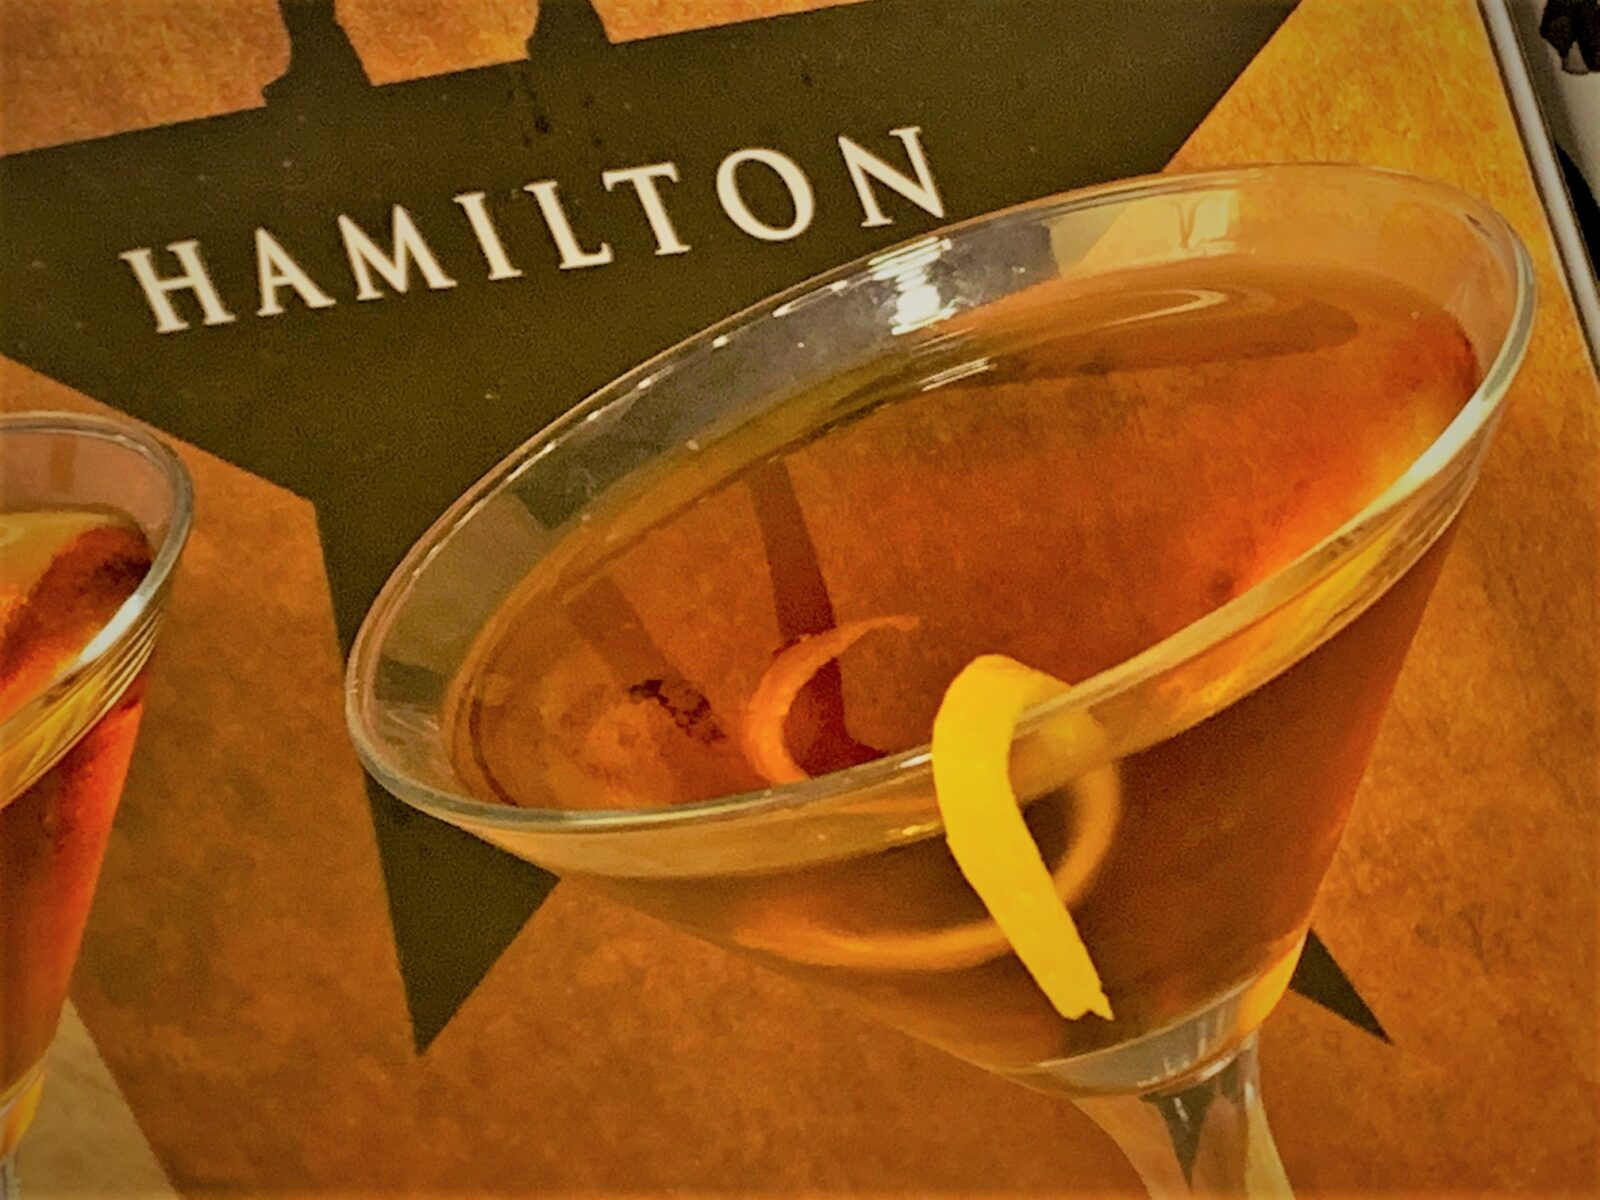 Our completed Aaron Burr-bon Manhattan - A Hamilton Inspired Cocktail